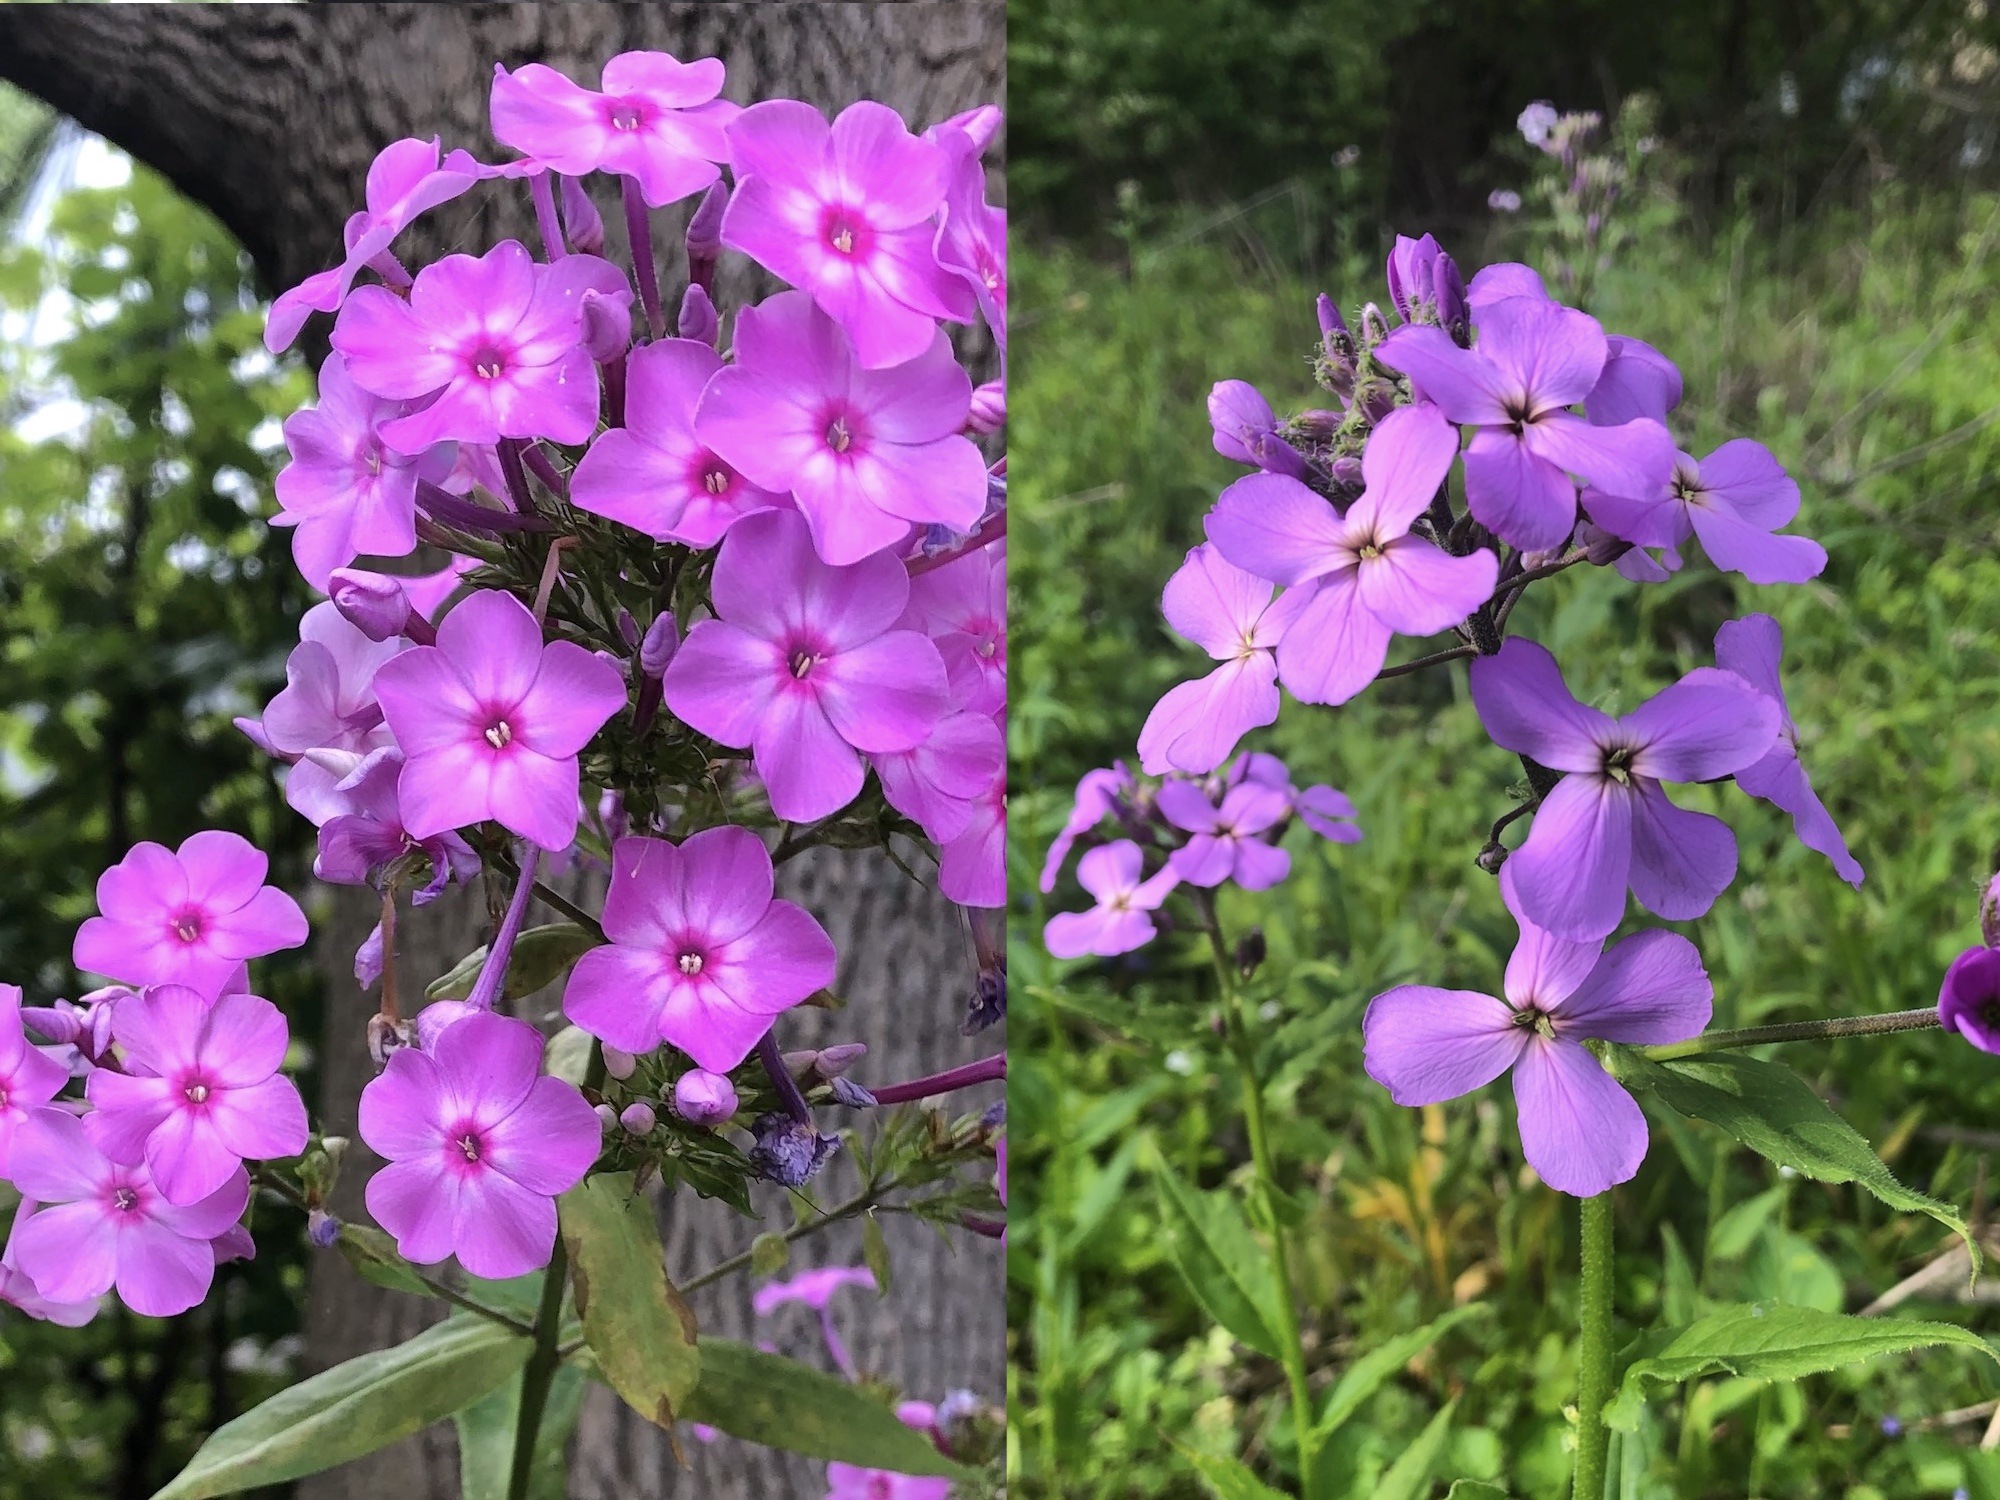 Difference between Tall Garden Phlox and Dames Rocket.